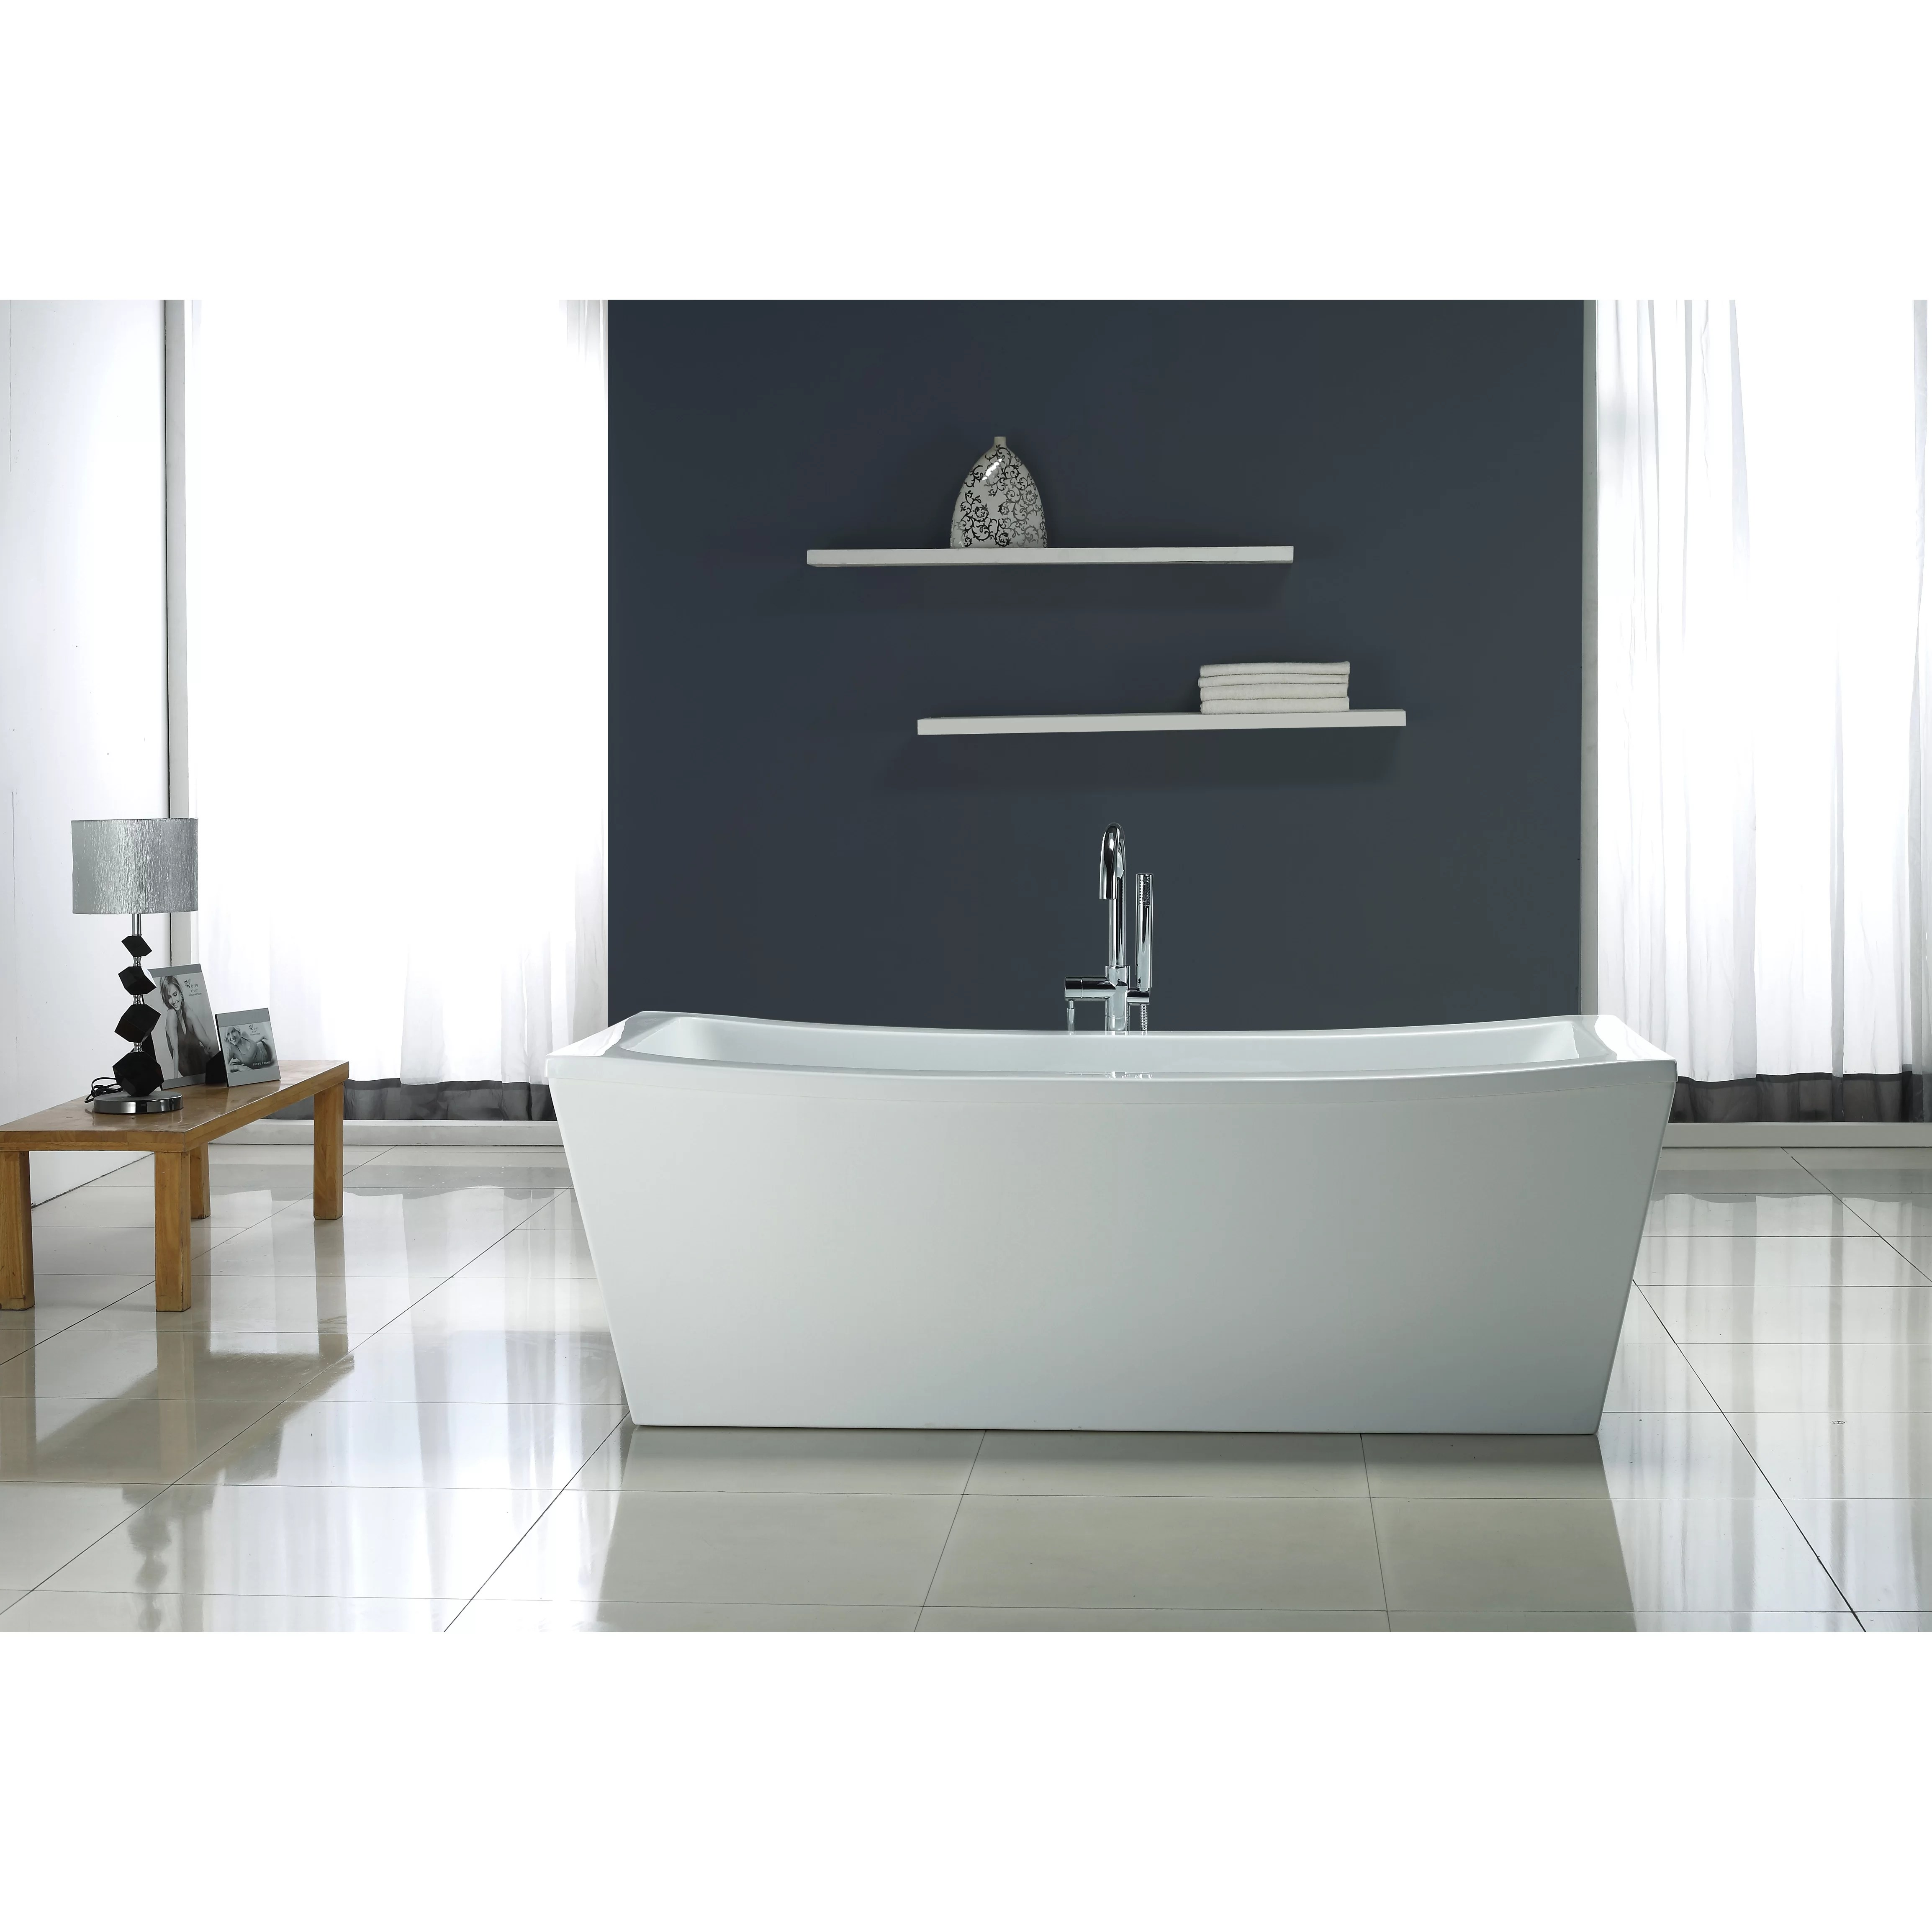 Ove Decors Terra 70 X 3425 Soaking Bathtub Amp Reviews